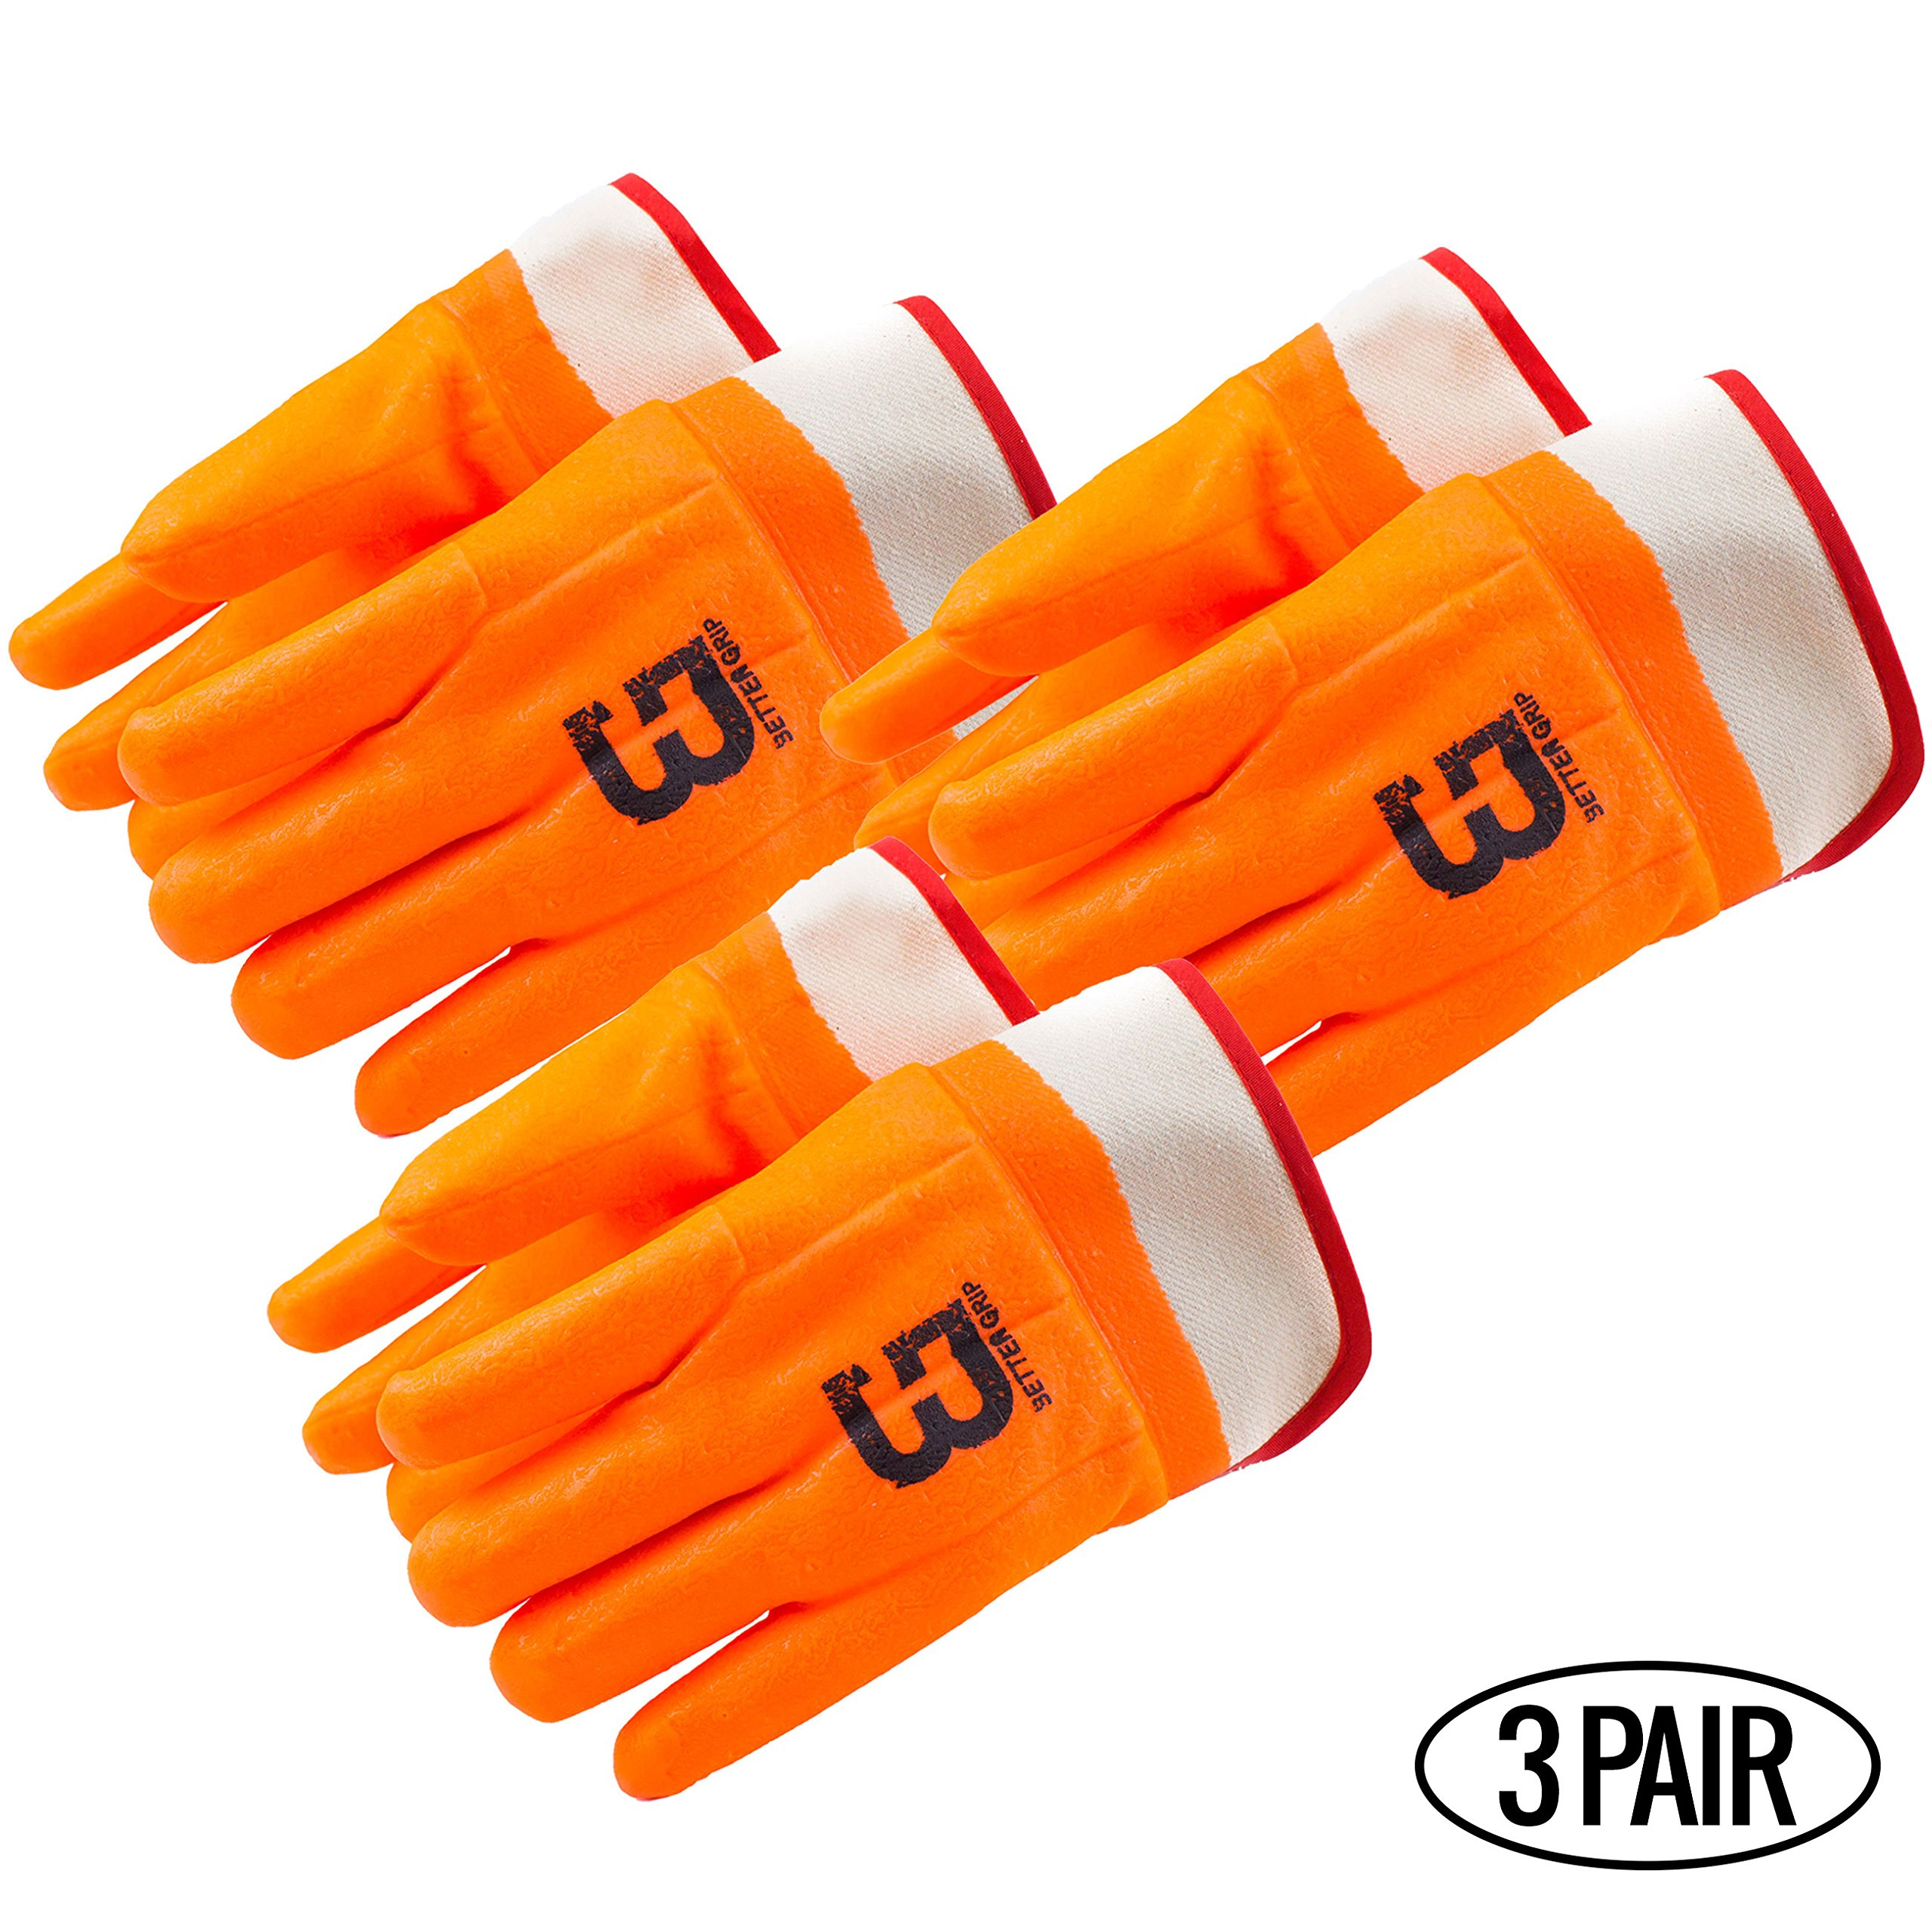 Better Grip Heavy Duty Premium Sandy finished PVC Coated-Supported Glove with Safety Cuff, Chemical Resistant, Large, Fluorescent Orange (3 Pairs)